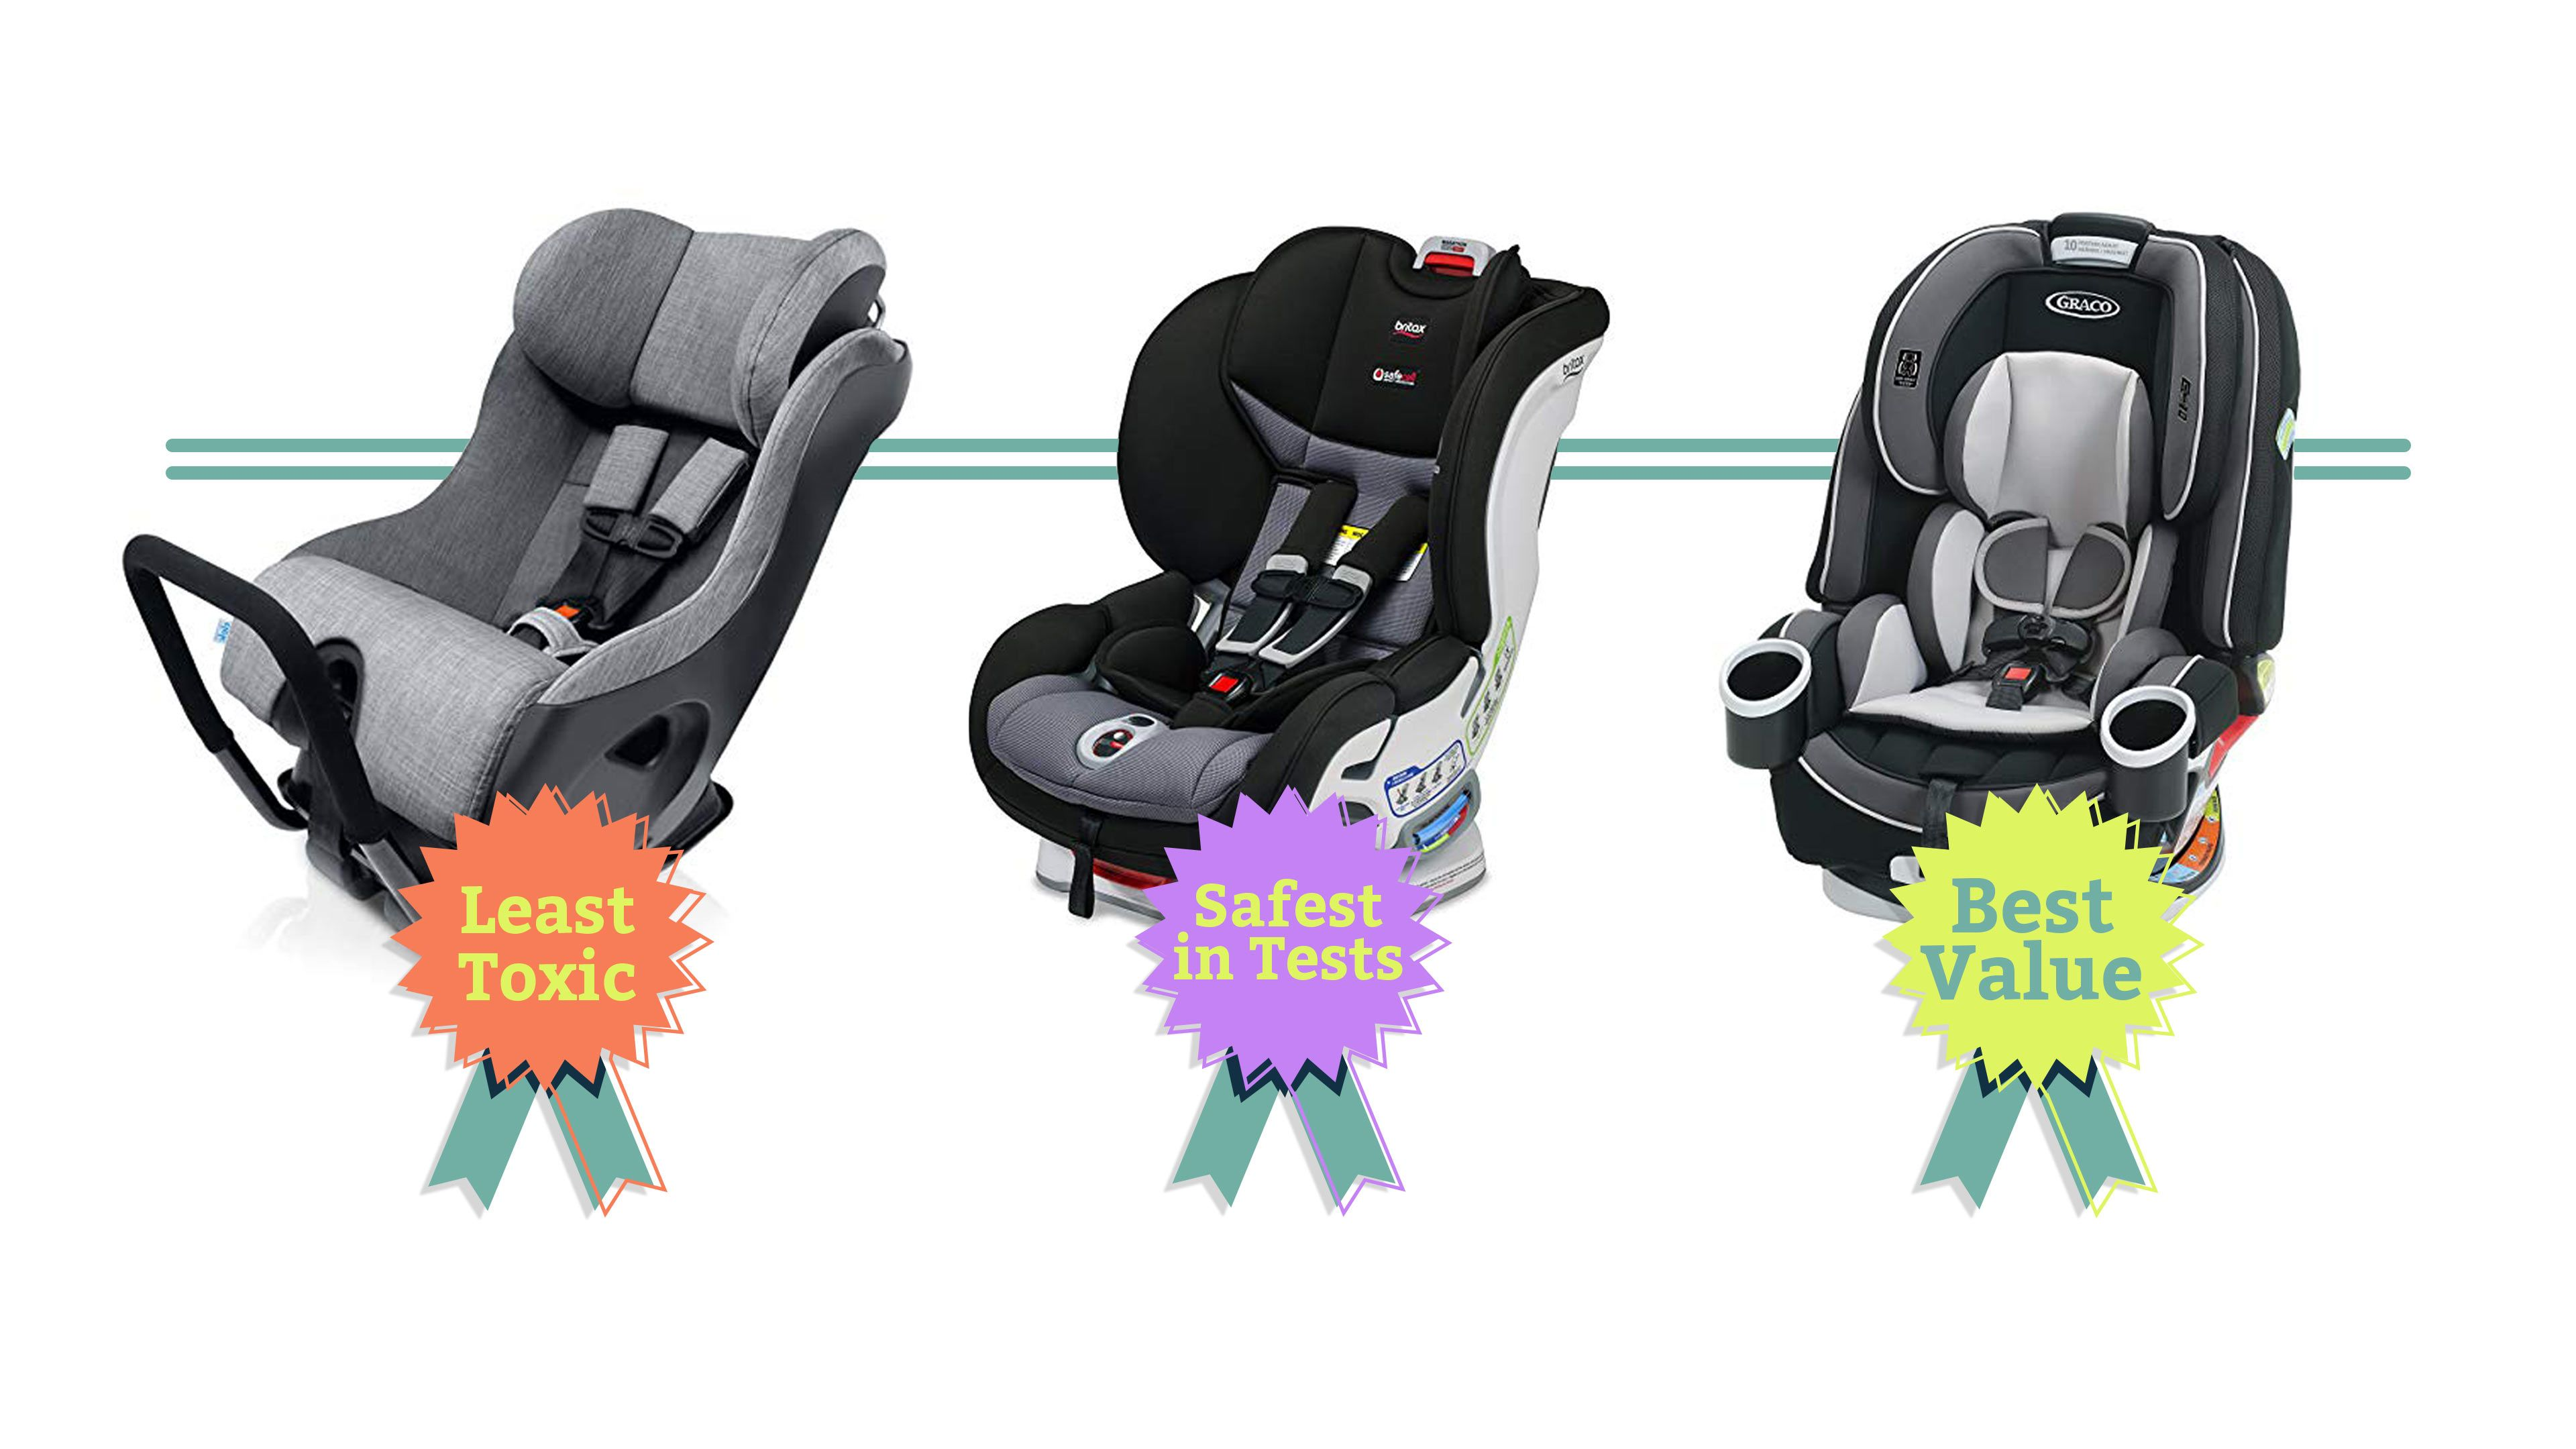 Convertible Car Seats in 2020 Baby car seats, Best